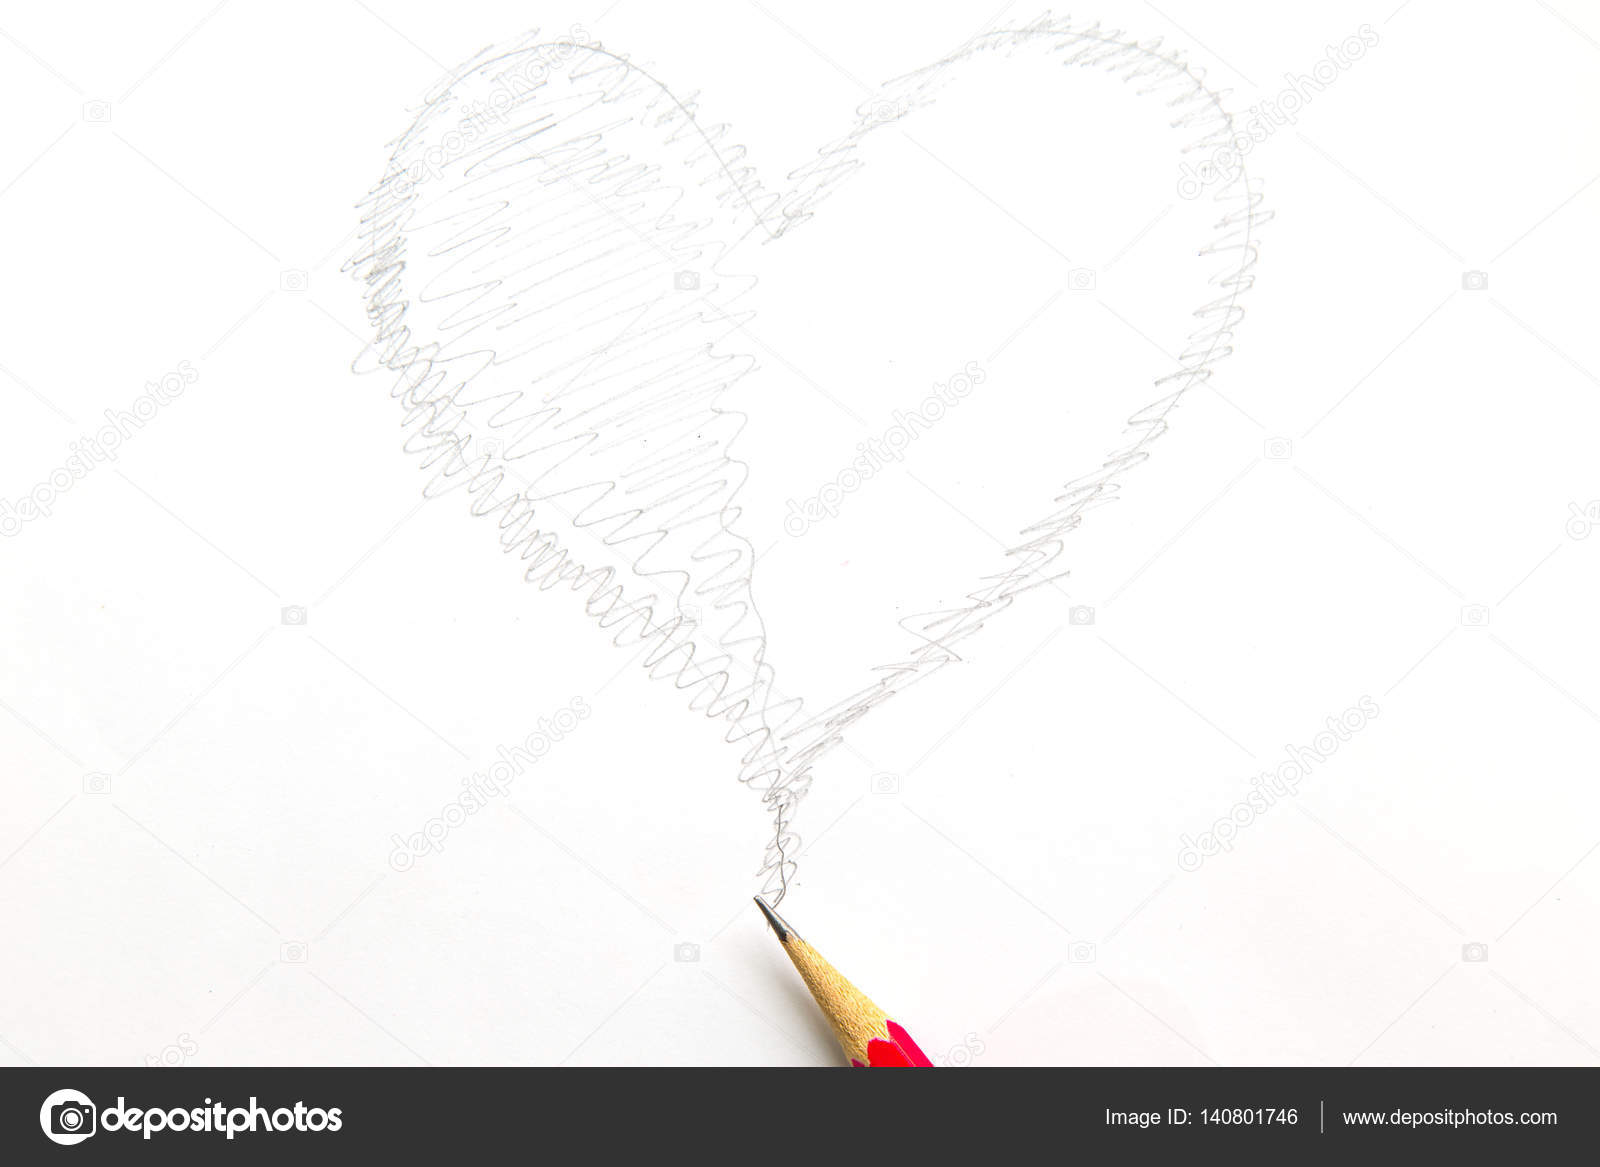 Line Drawing Heart Shape : Drawing heart shape with pencil isolated on white background